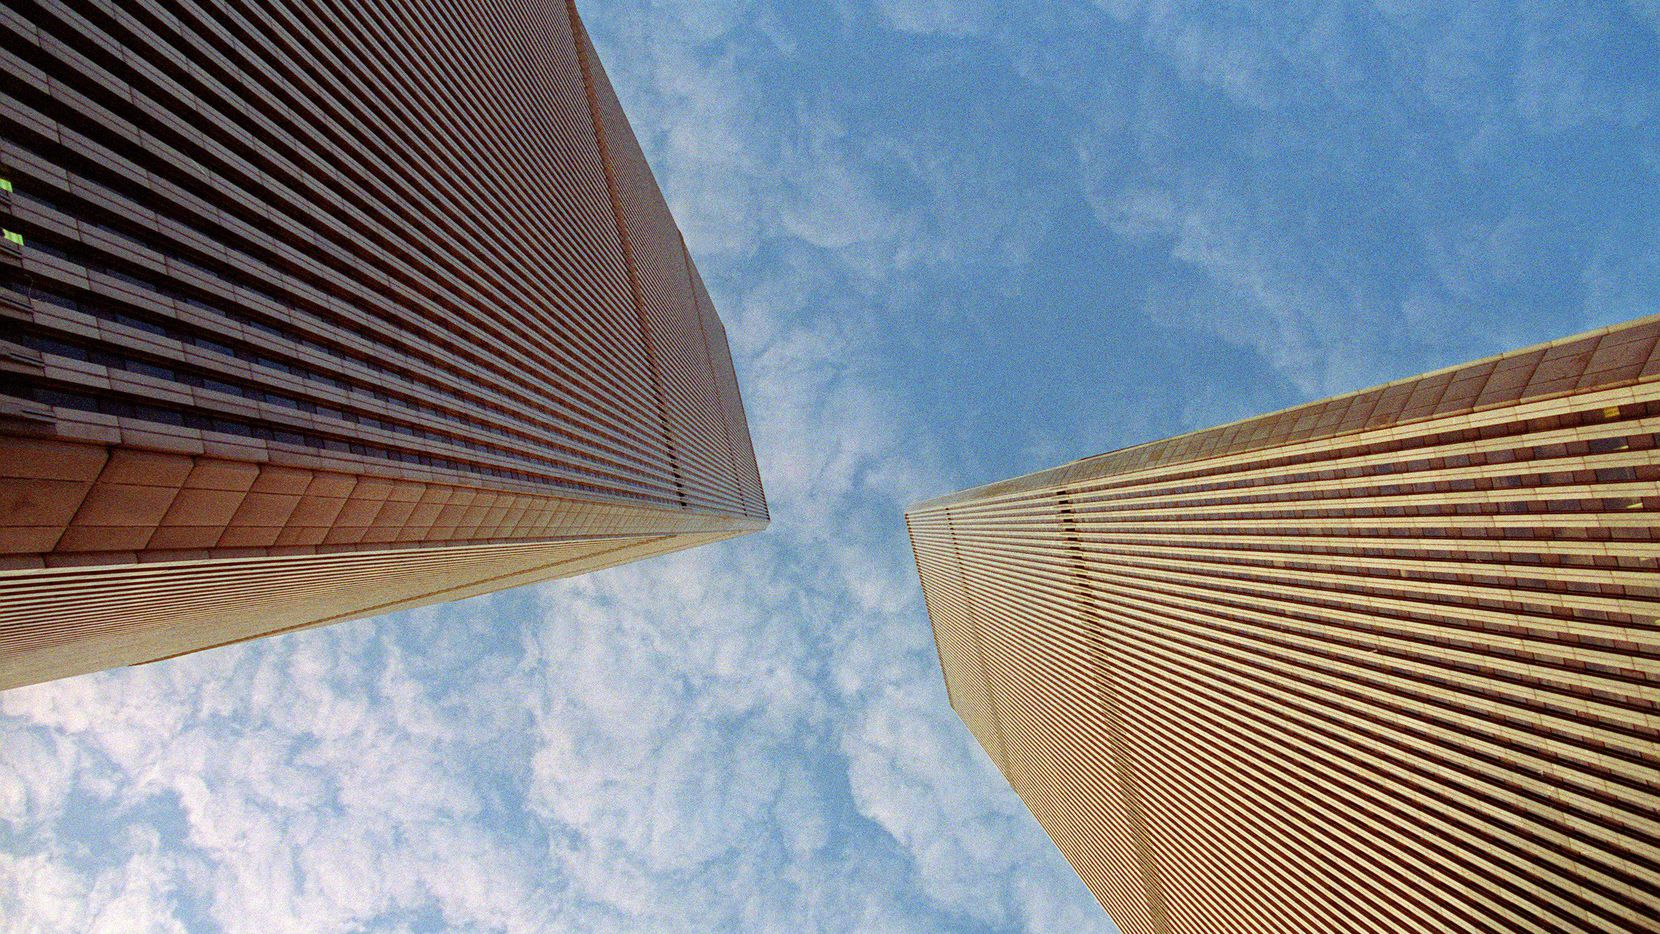 This file photo taken November 8, 1992 shows the twin towers of the World Trade Center, in lower Manhattan, New York.  On the morning of Tuesday Sept. 11, 2001, New Yorkers woke to crisp blue skies following a storm that had soaked America's northeastern seaboard the day before. The cloudless, beautiful sky was little portent of the dark, history-changing day that was to come but would remain etched on the memory of those involved.